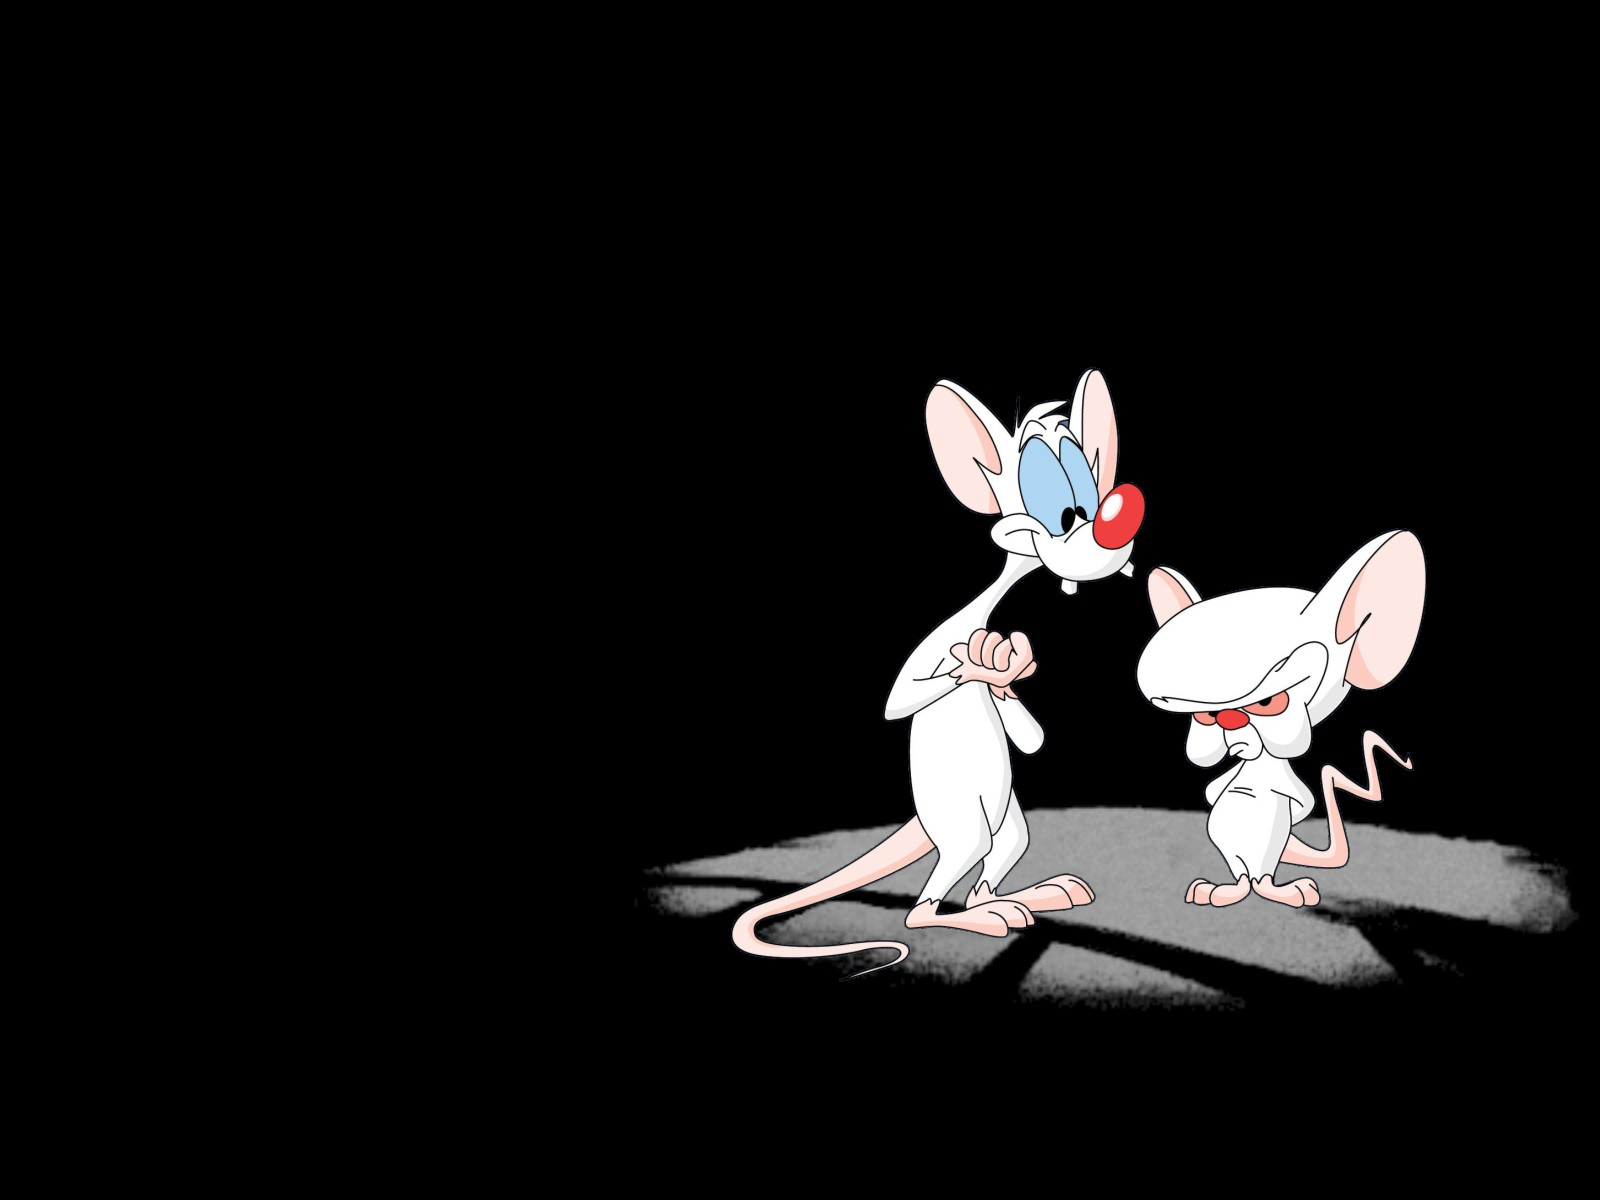 1600x1200 > Pinky And The Brain Wallpapers